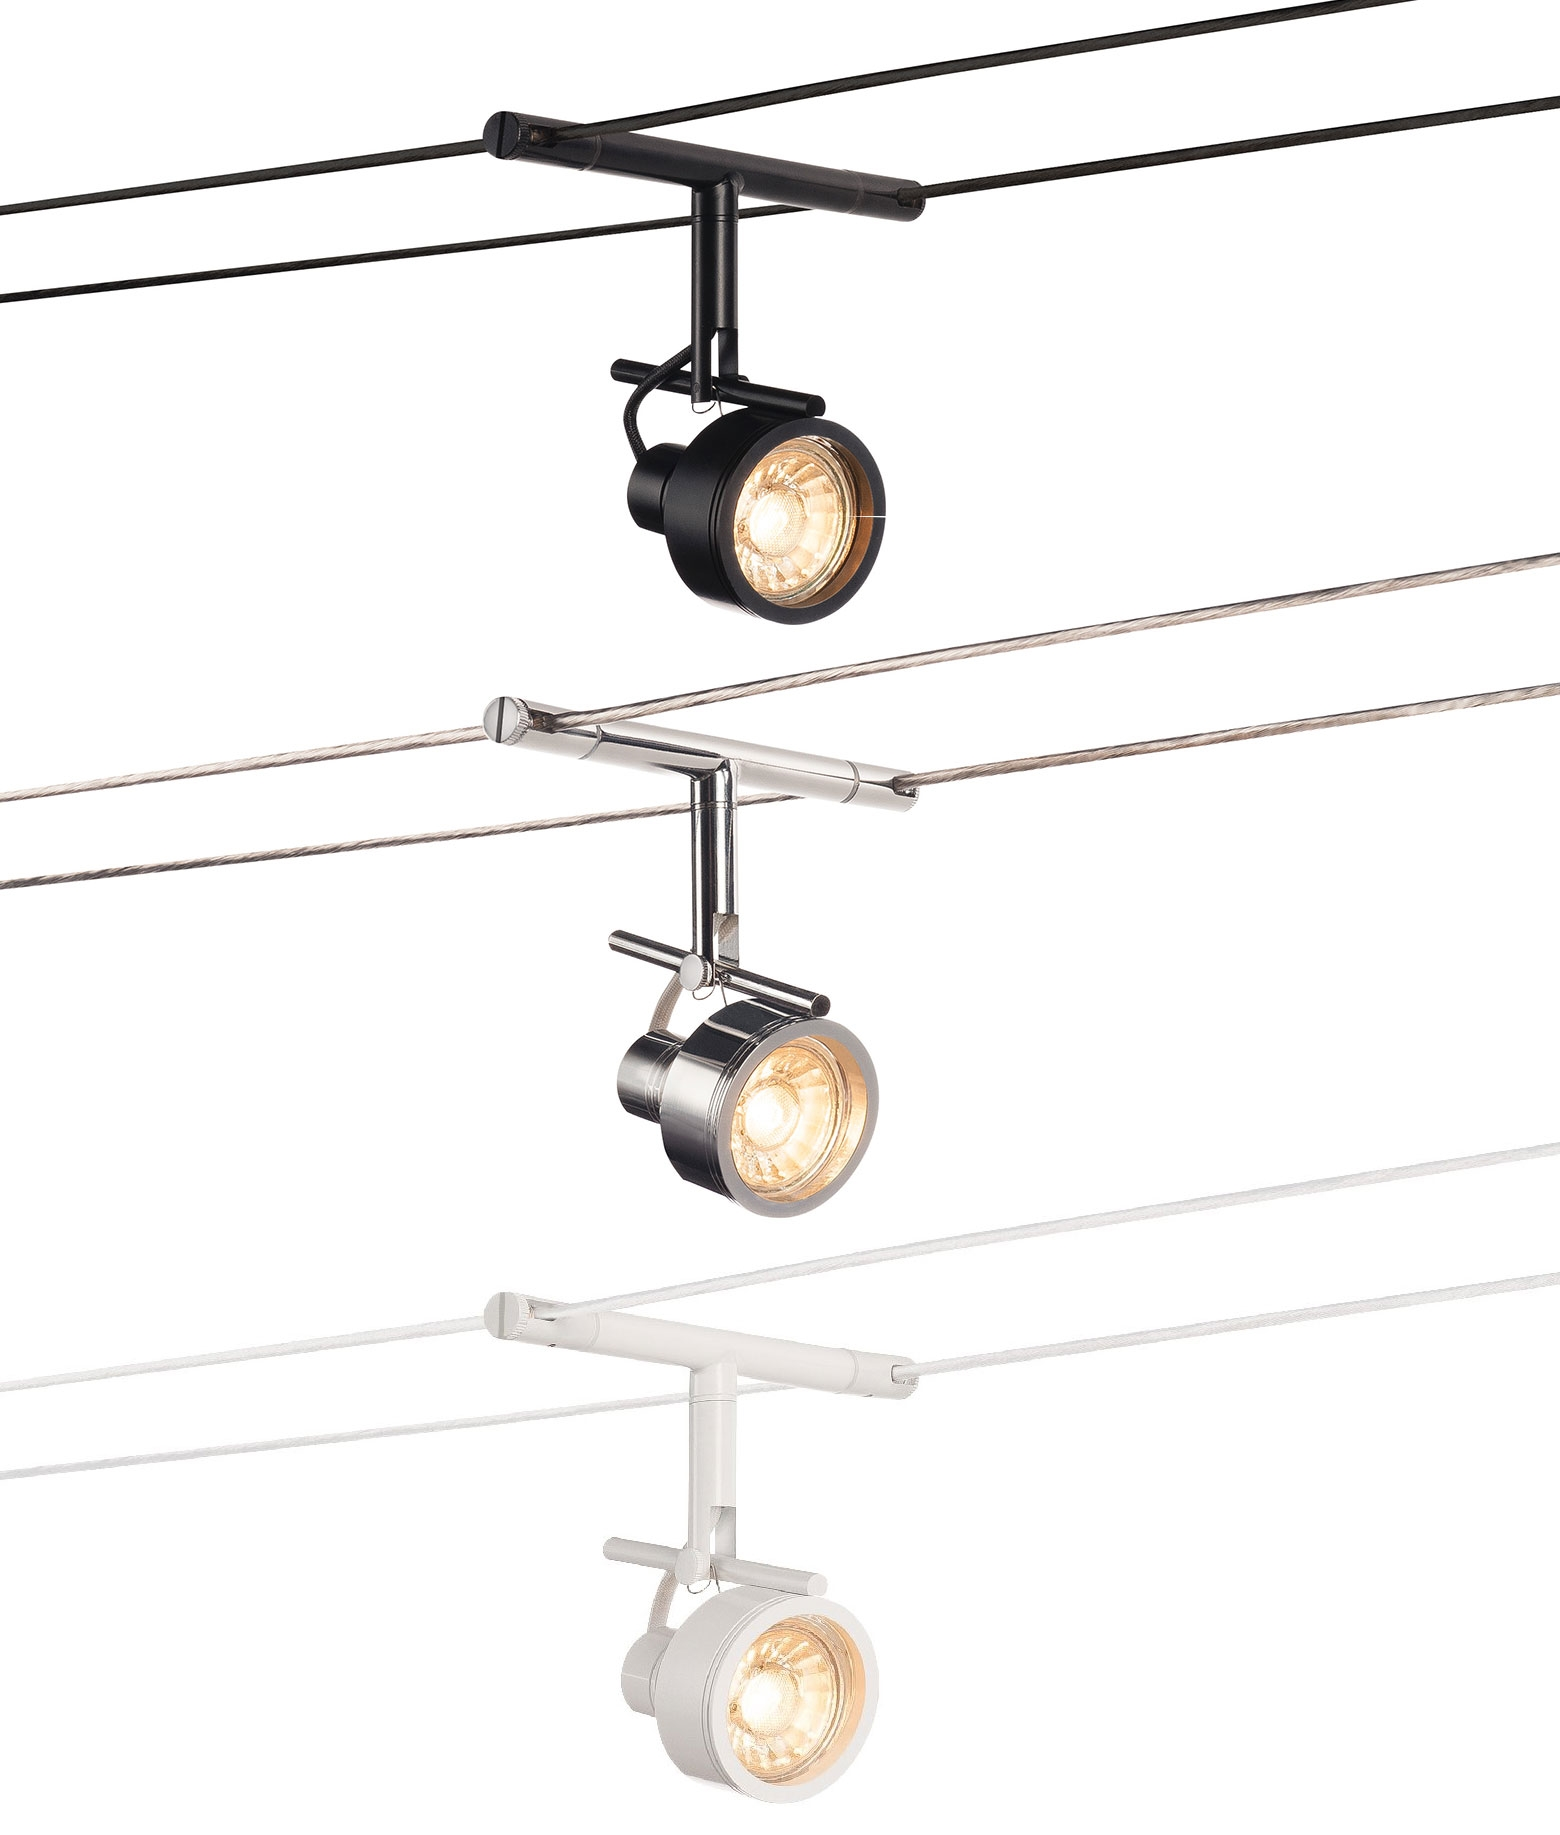 Tension Wire Adjustable Lampholder Available In Chrome Black Or White